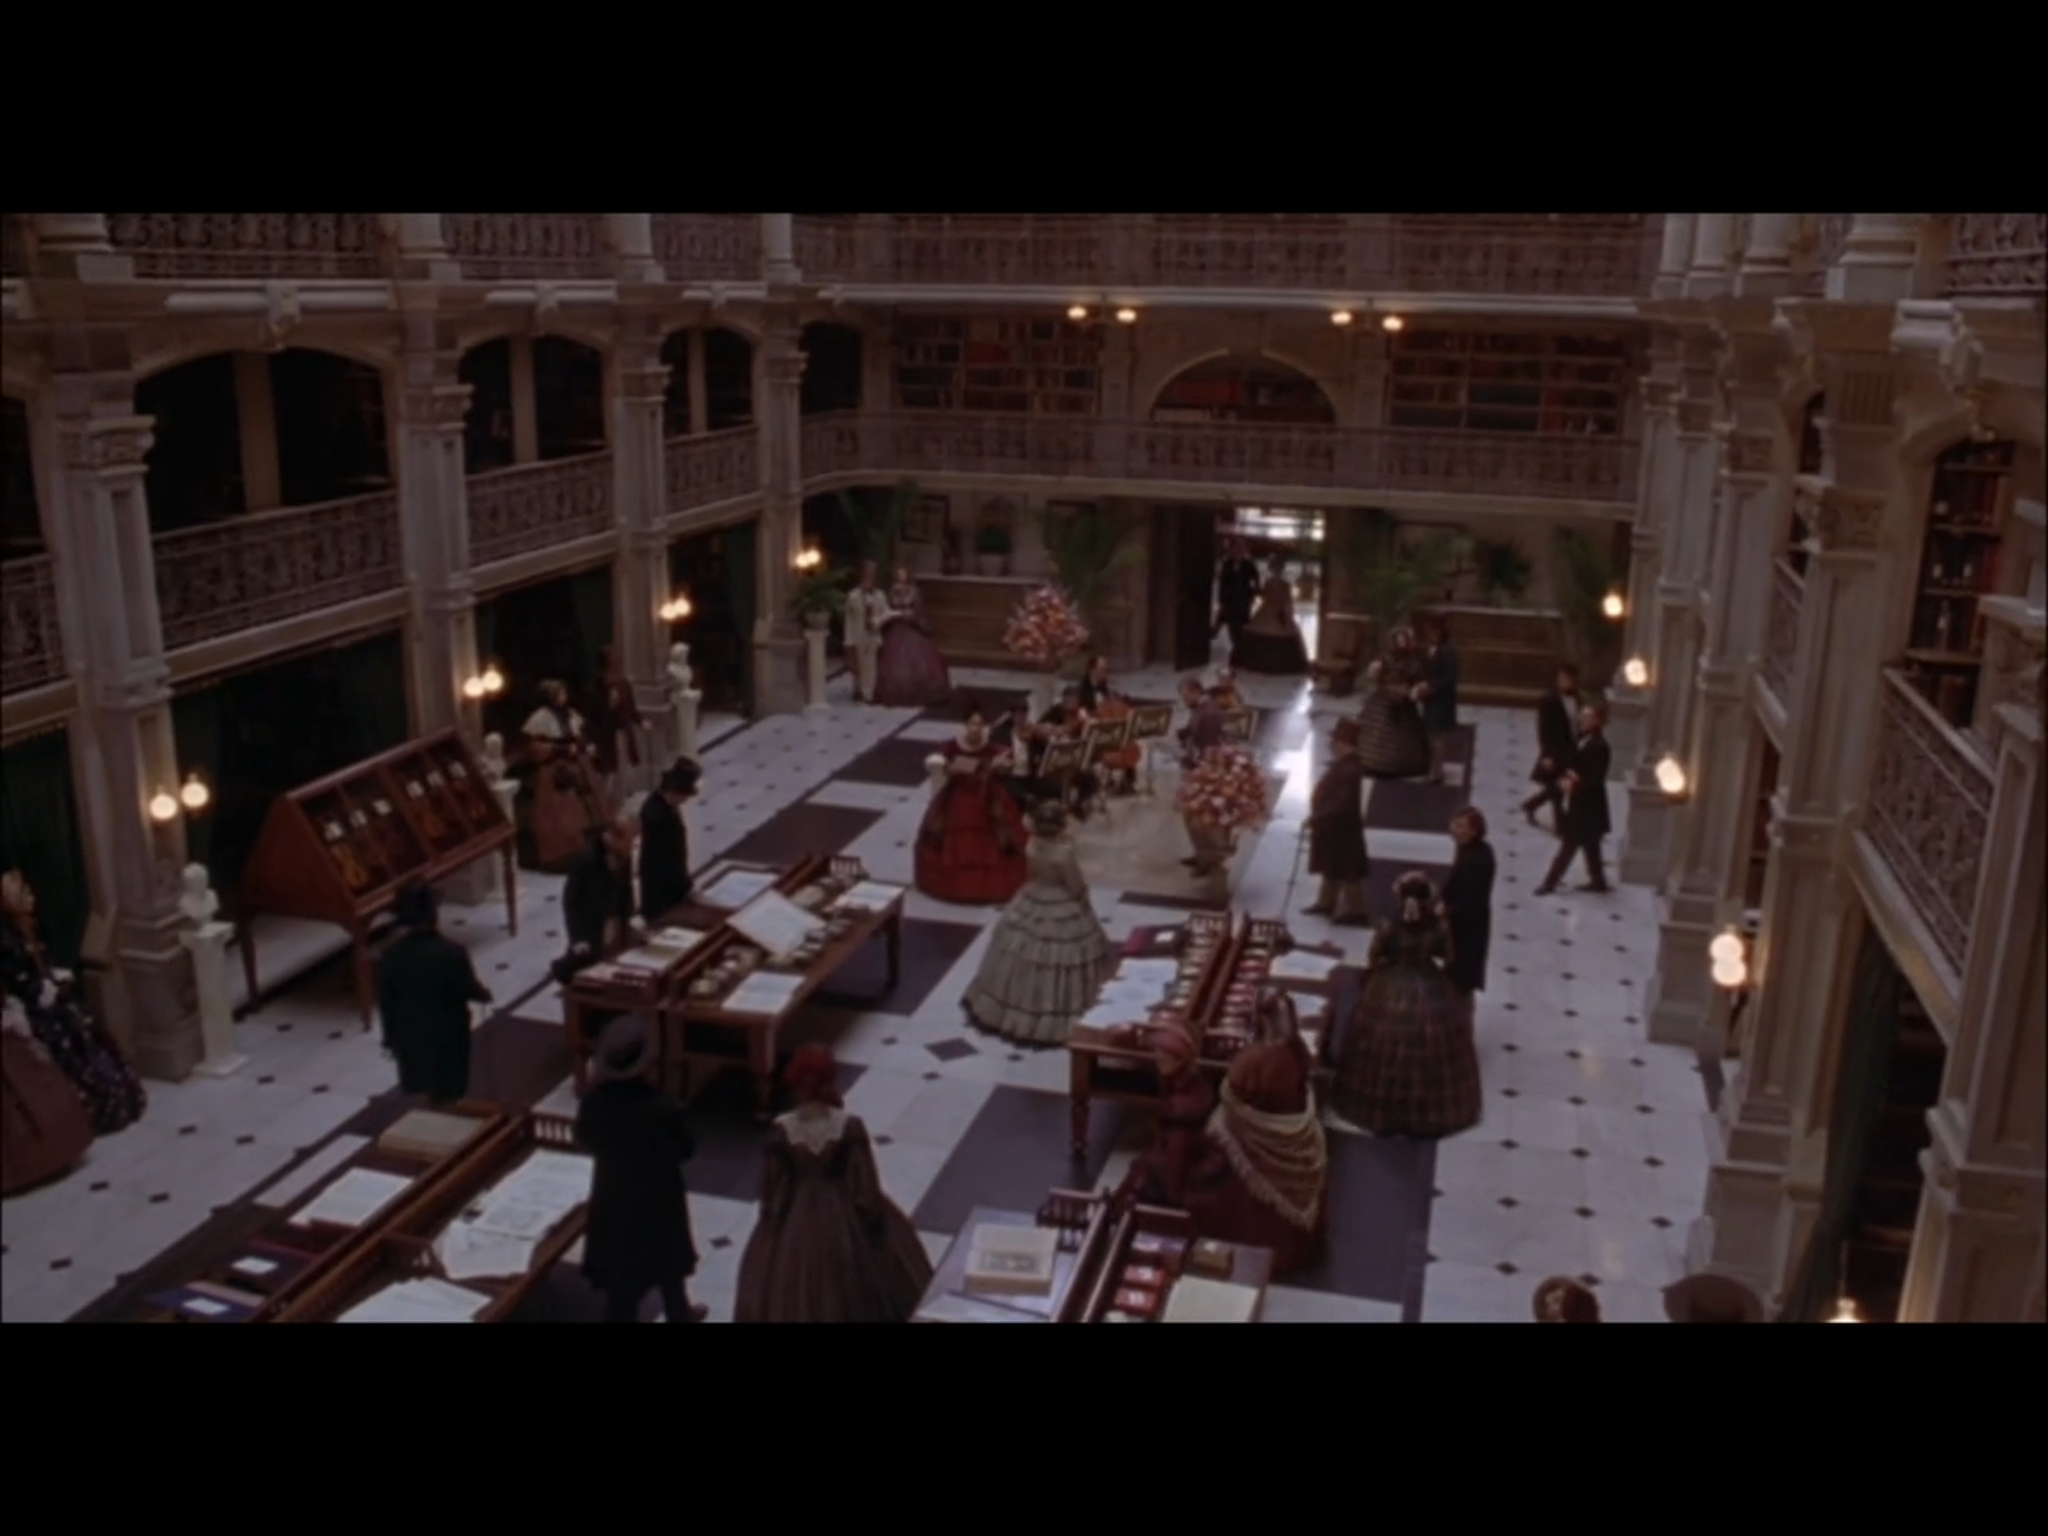 Screenshot from Washington Square of a Paris bookshop scene filmed on location at the main reading room of the George Peabody Library.